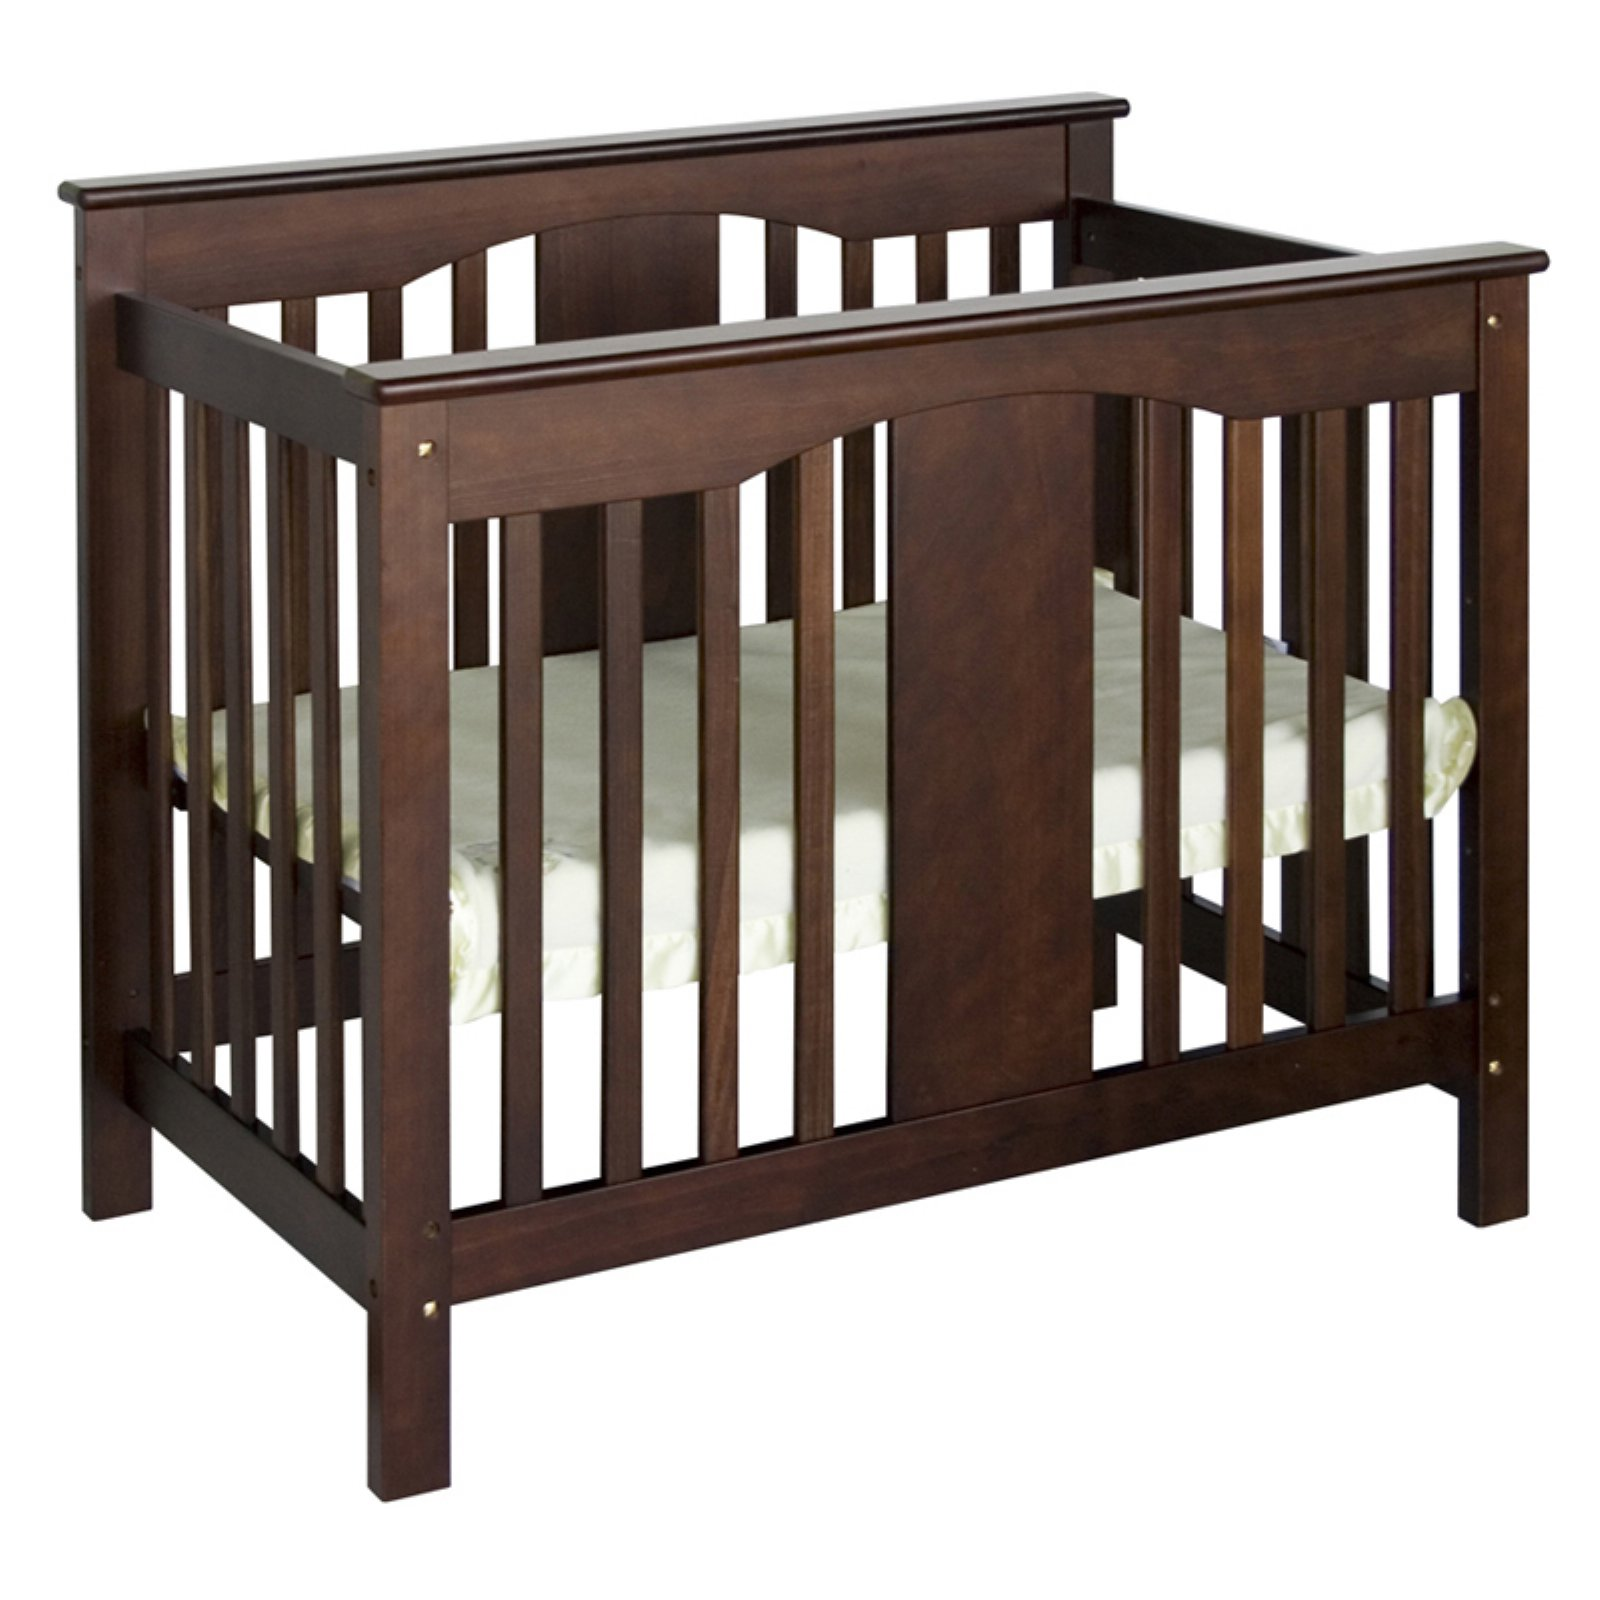 and baby angle cribs h bed mini crib twin davinci emily in annabelle